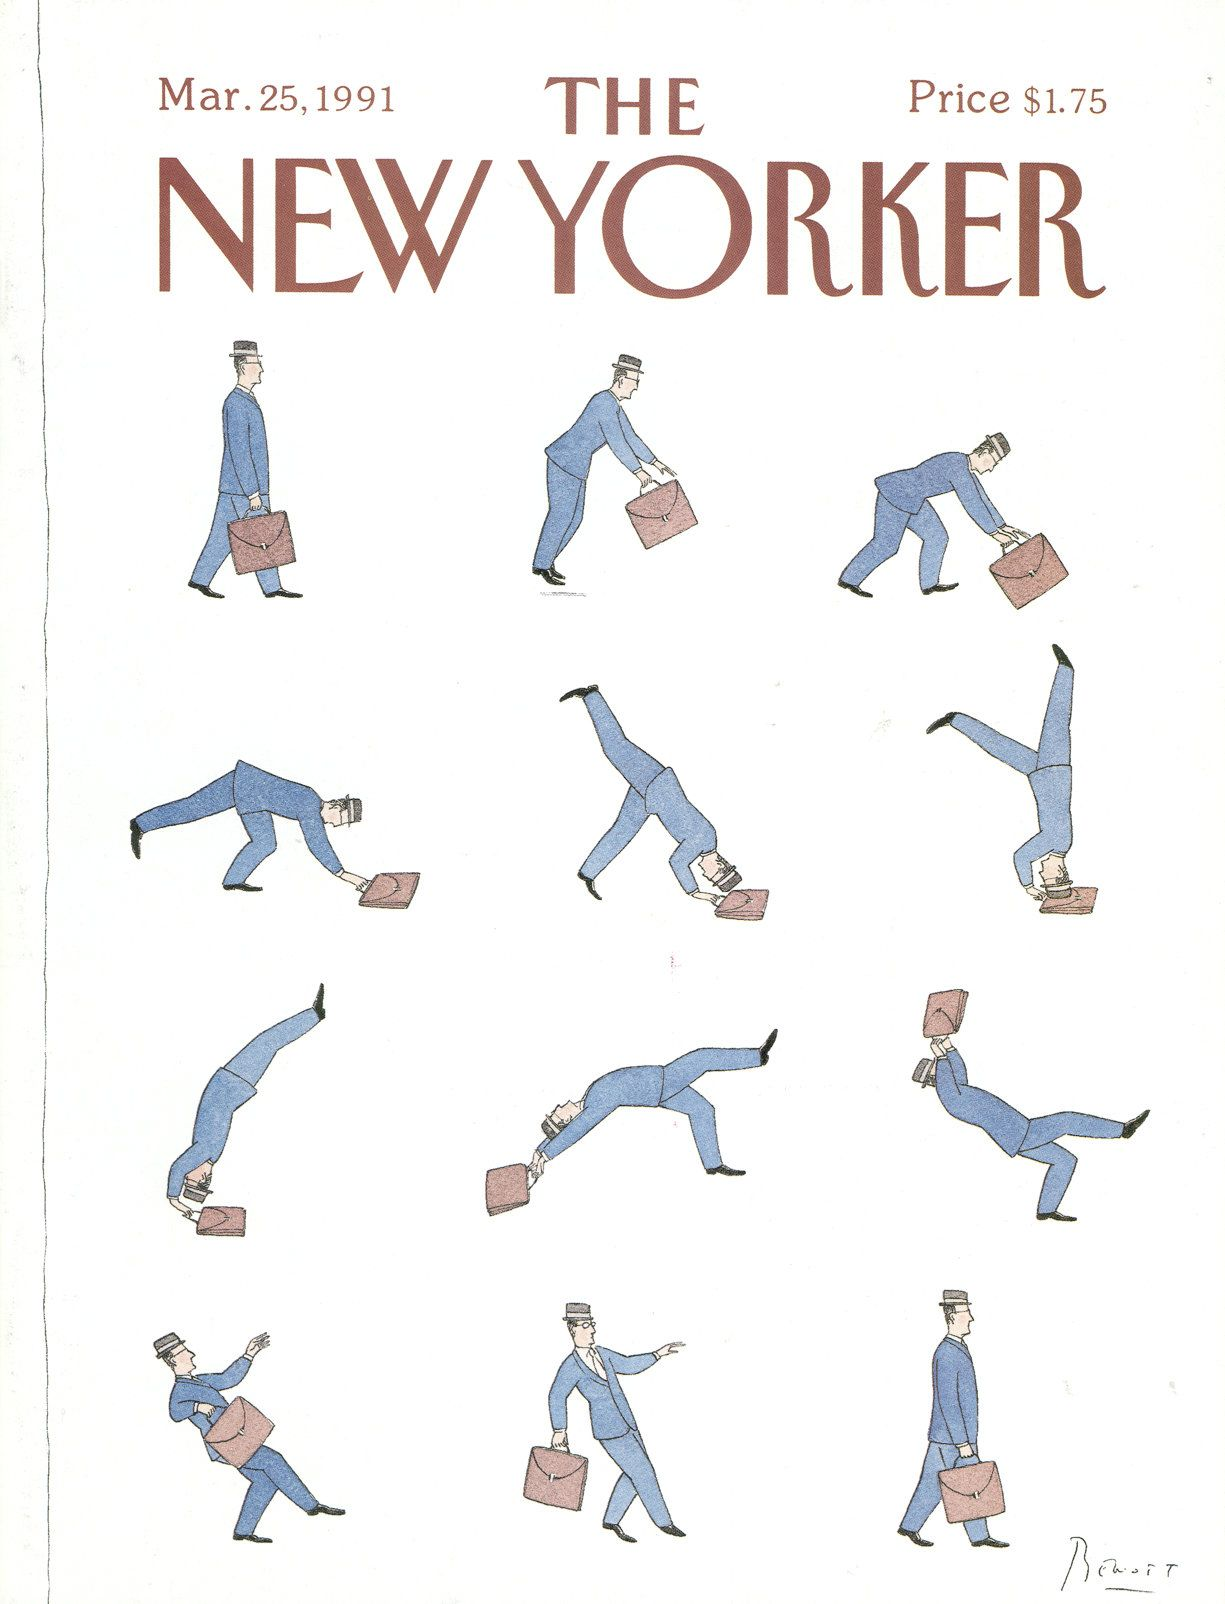 The New Yorker - Monday, March 25, 1991 - Issue # 3449 - Vol. 67 - N° 5 - Cover by : Benoît van Innis